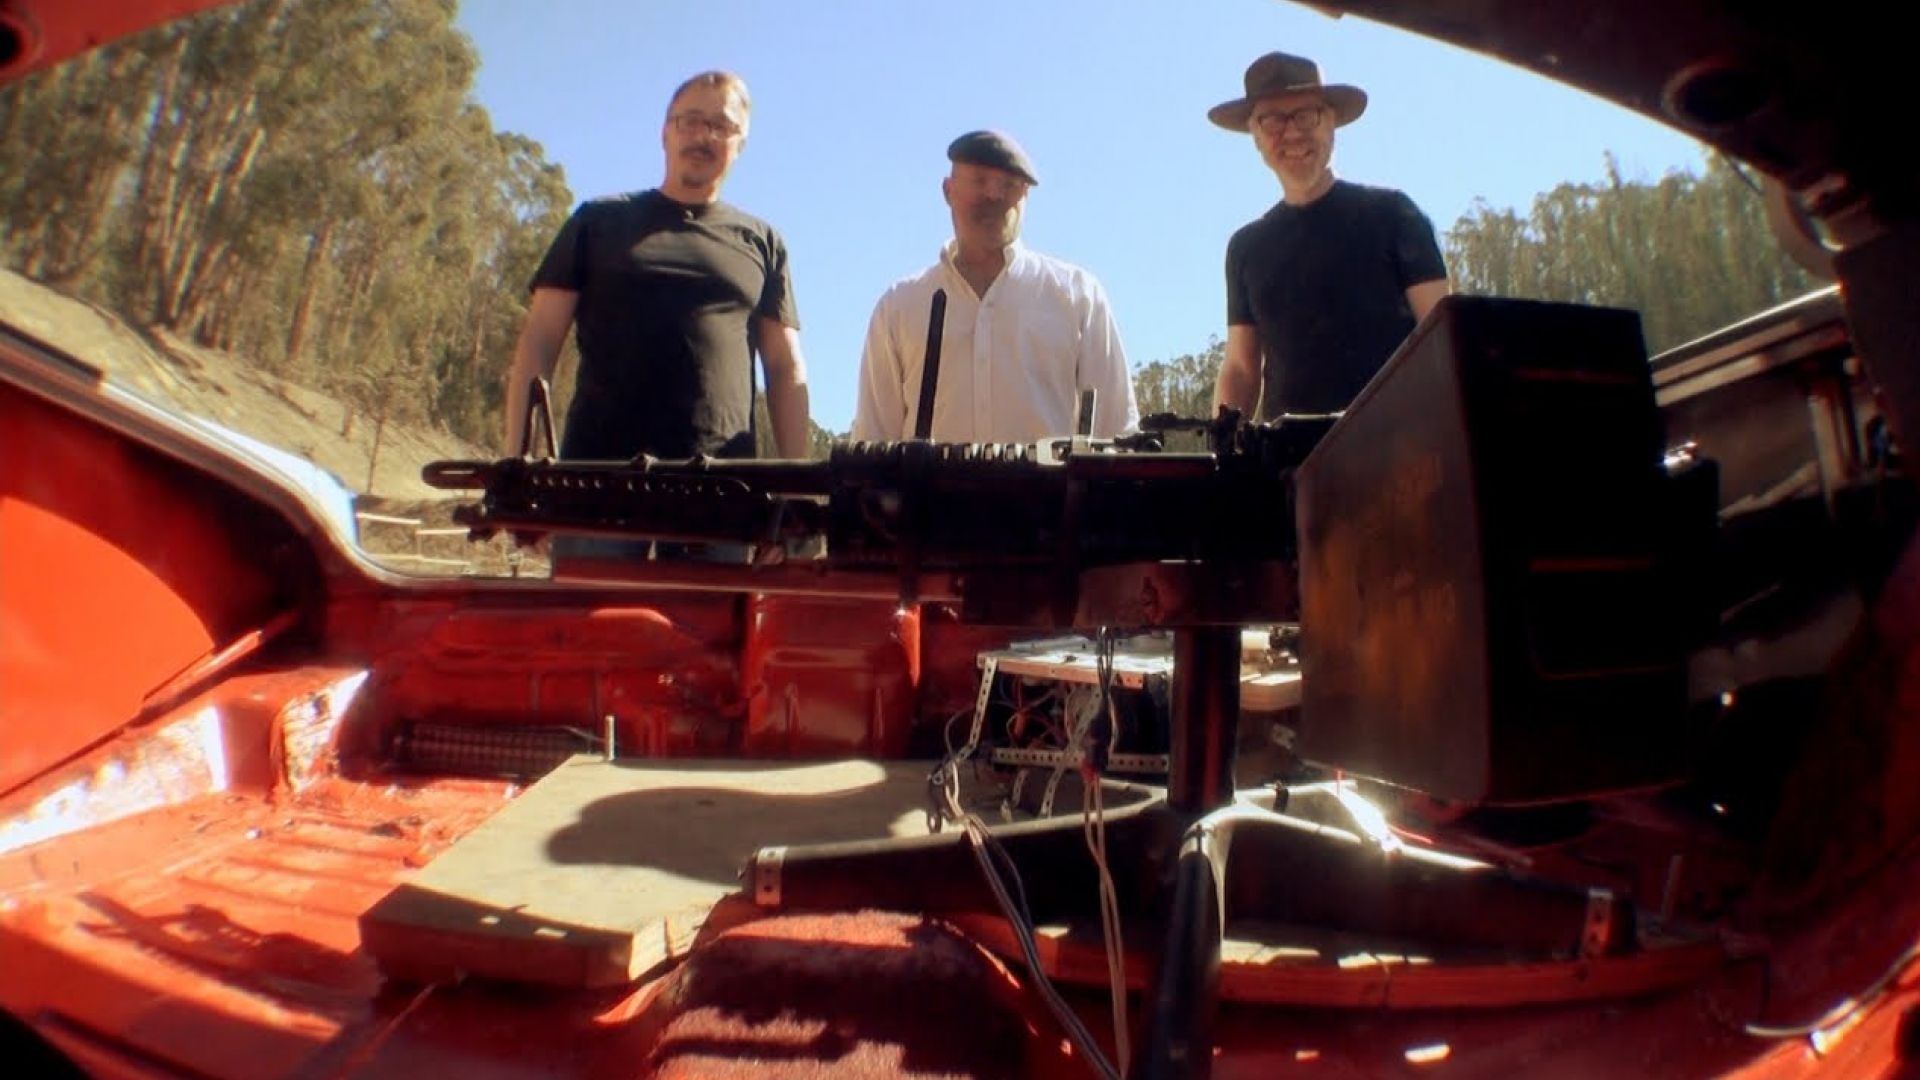 Watch MythBusters take on the 'Breaking Bad' M60 machine gun